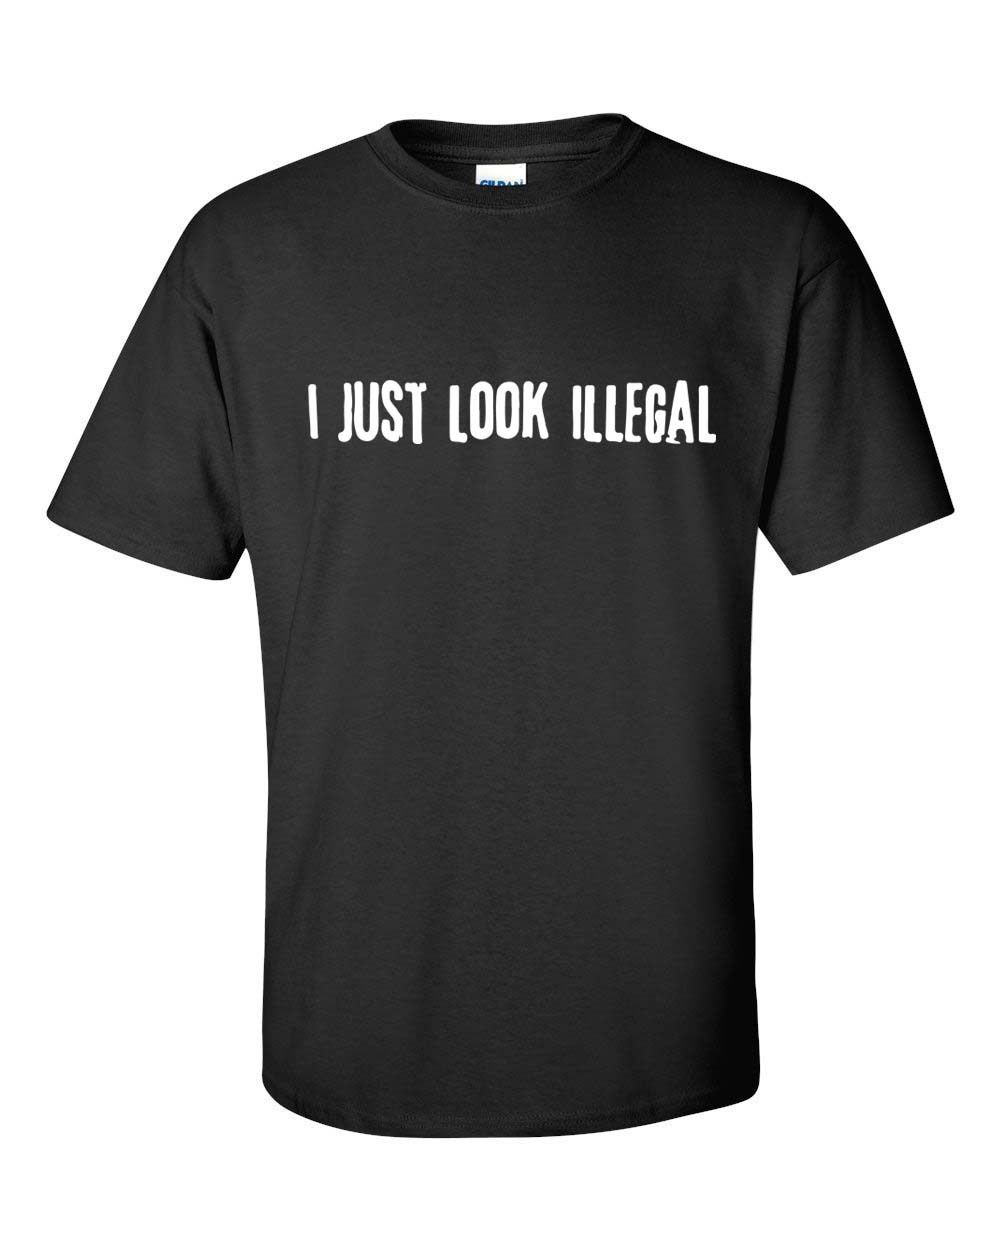 I JUST LOOK ILLEGAL SERGIO ROMO SAN FRANCISCO GIANTS WORLD SERIES TShirt271(China (Mainland))